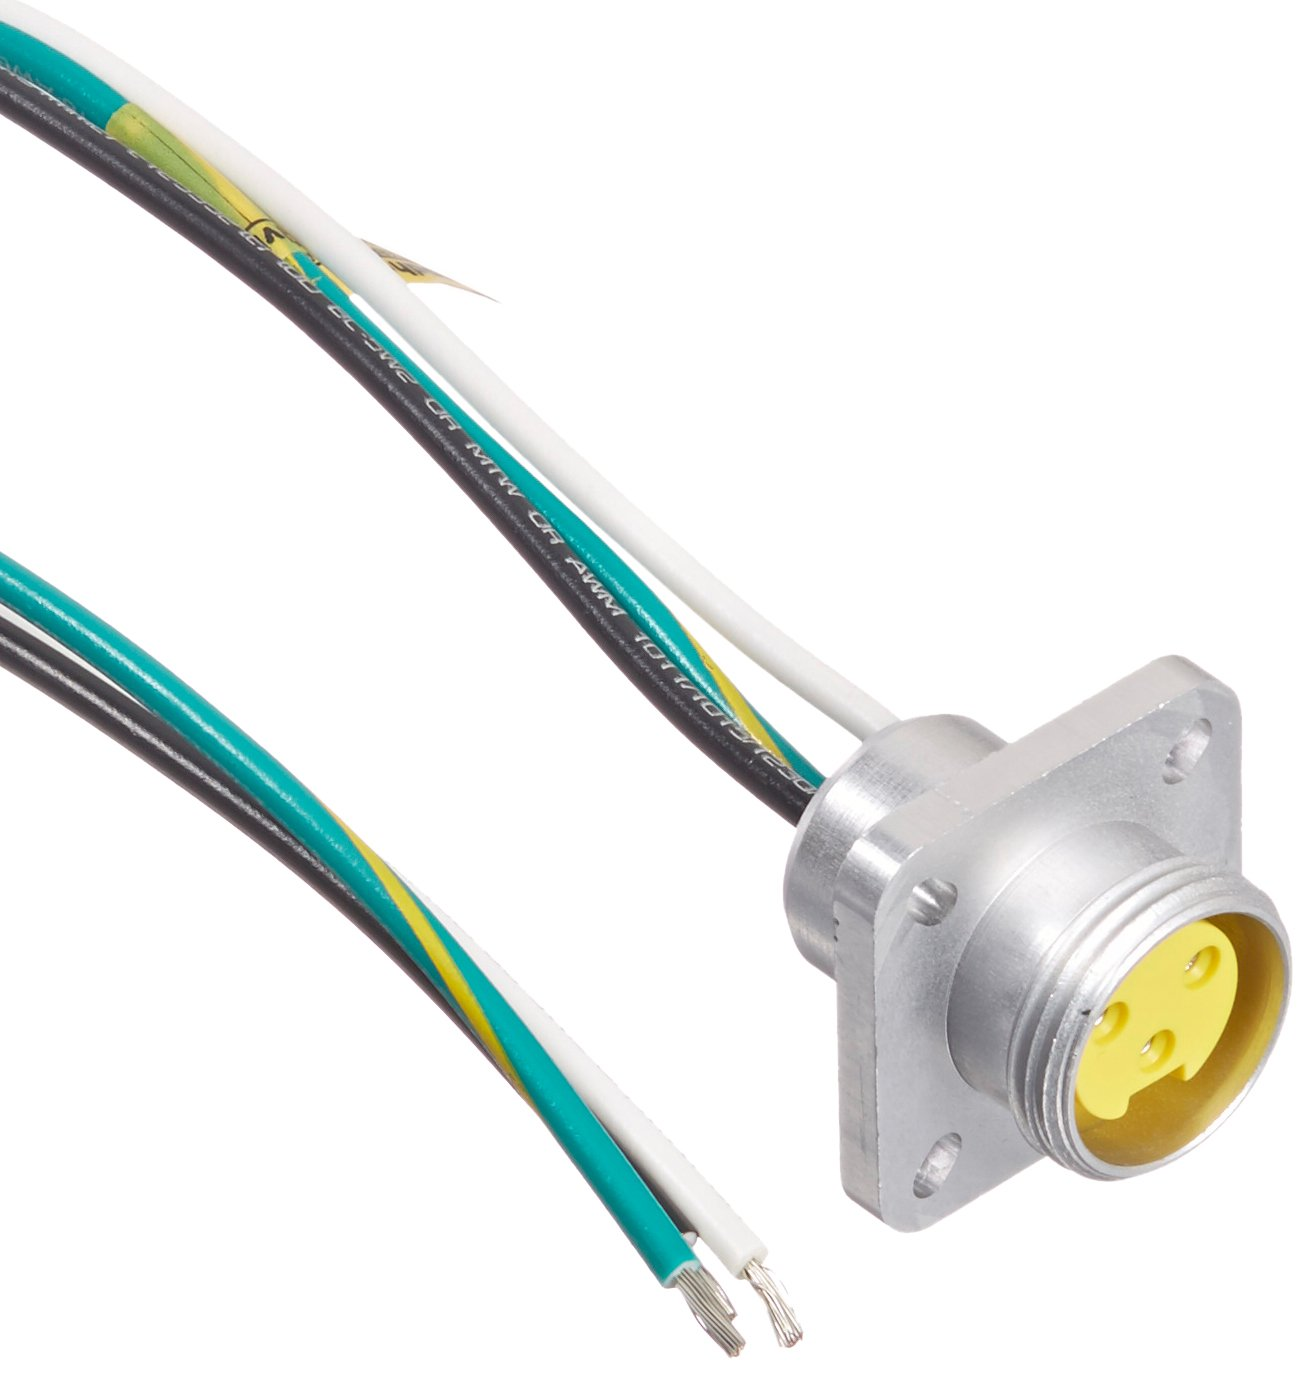 Brad 1R3G04A20A120 Mini-Change A-Size Receptacle with Lead, Female Straight, 3 Pole, Flange, UL1061 Cable Type, PVC Cable Jacket, 16AWG Wire Size, 13.0A Max Current Rating, 600V AC/DC Max Voltage, 12'' Cable Length, Front Panel Mount (Pack of 4) by Brad Automation